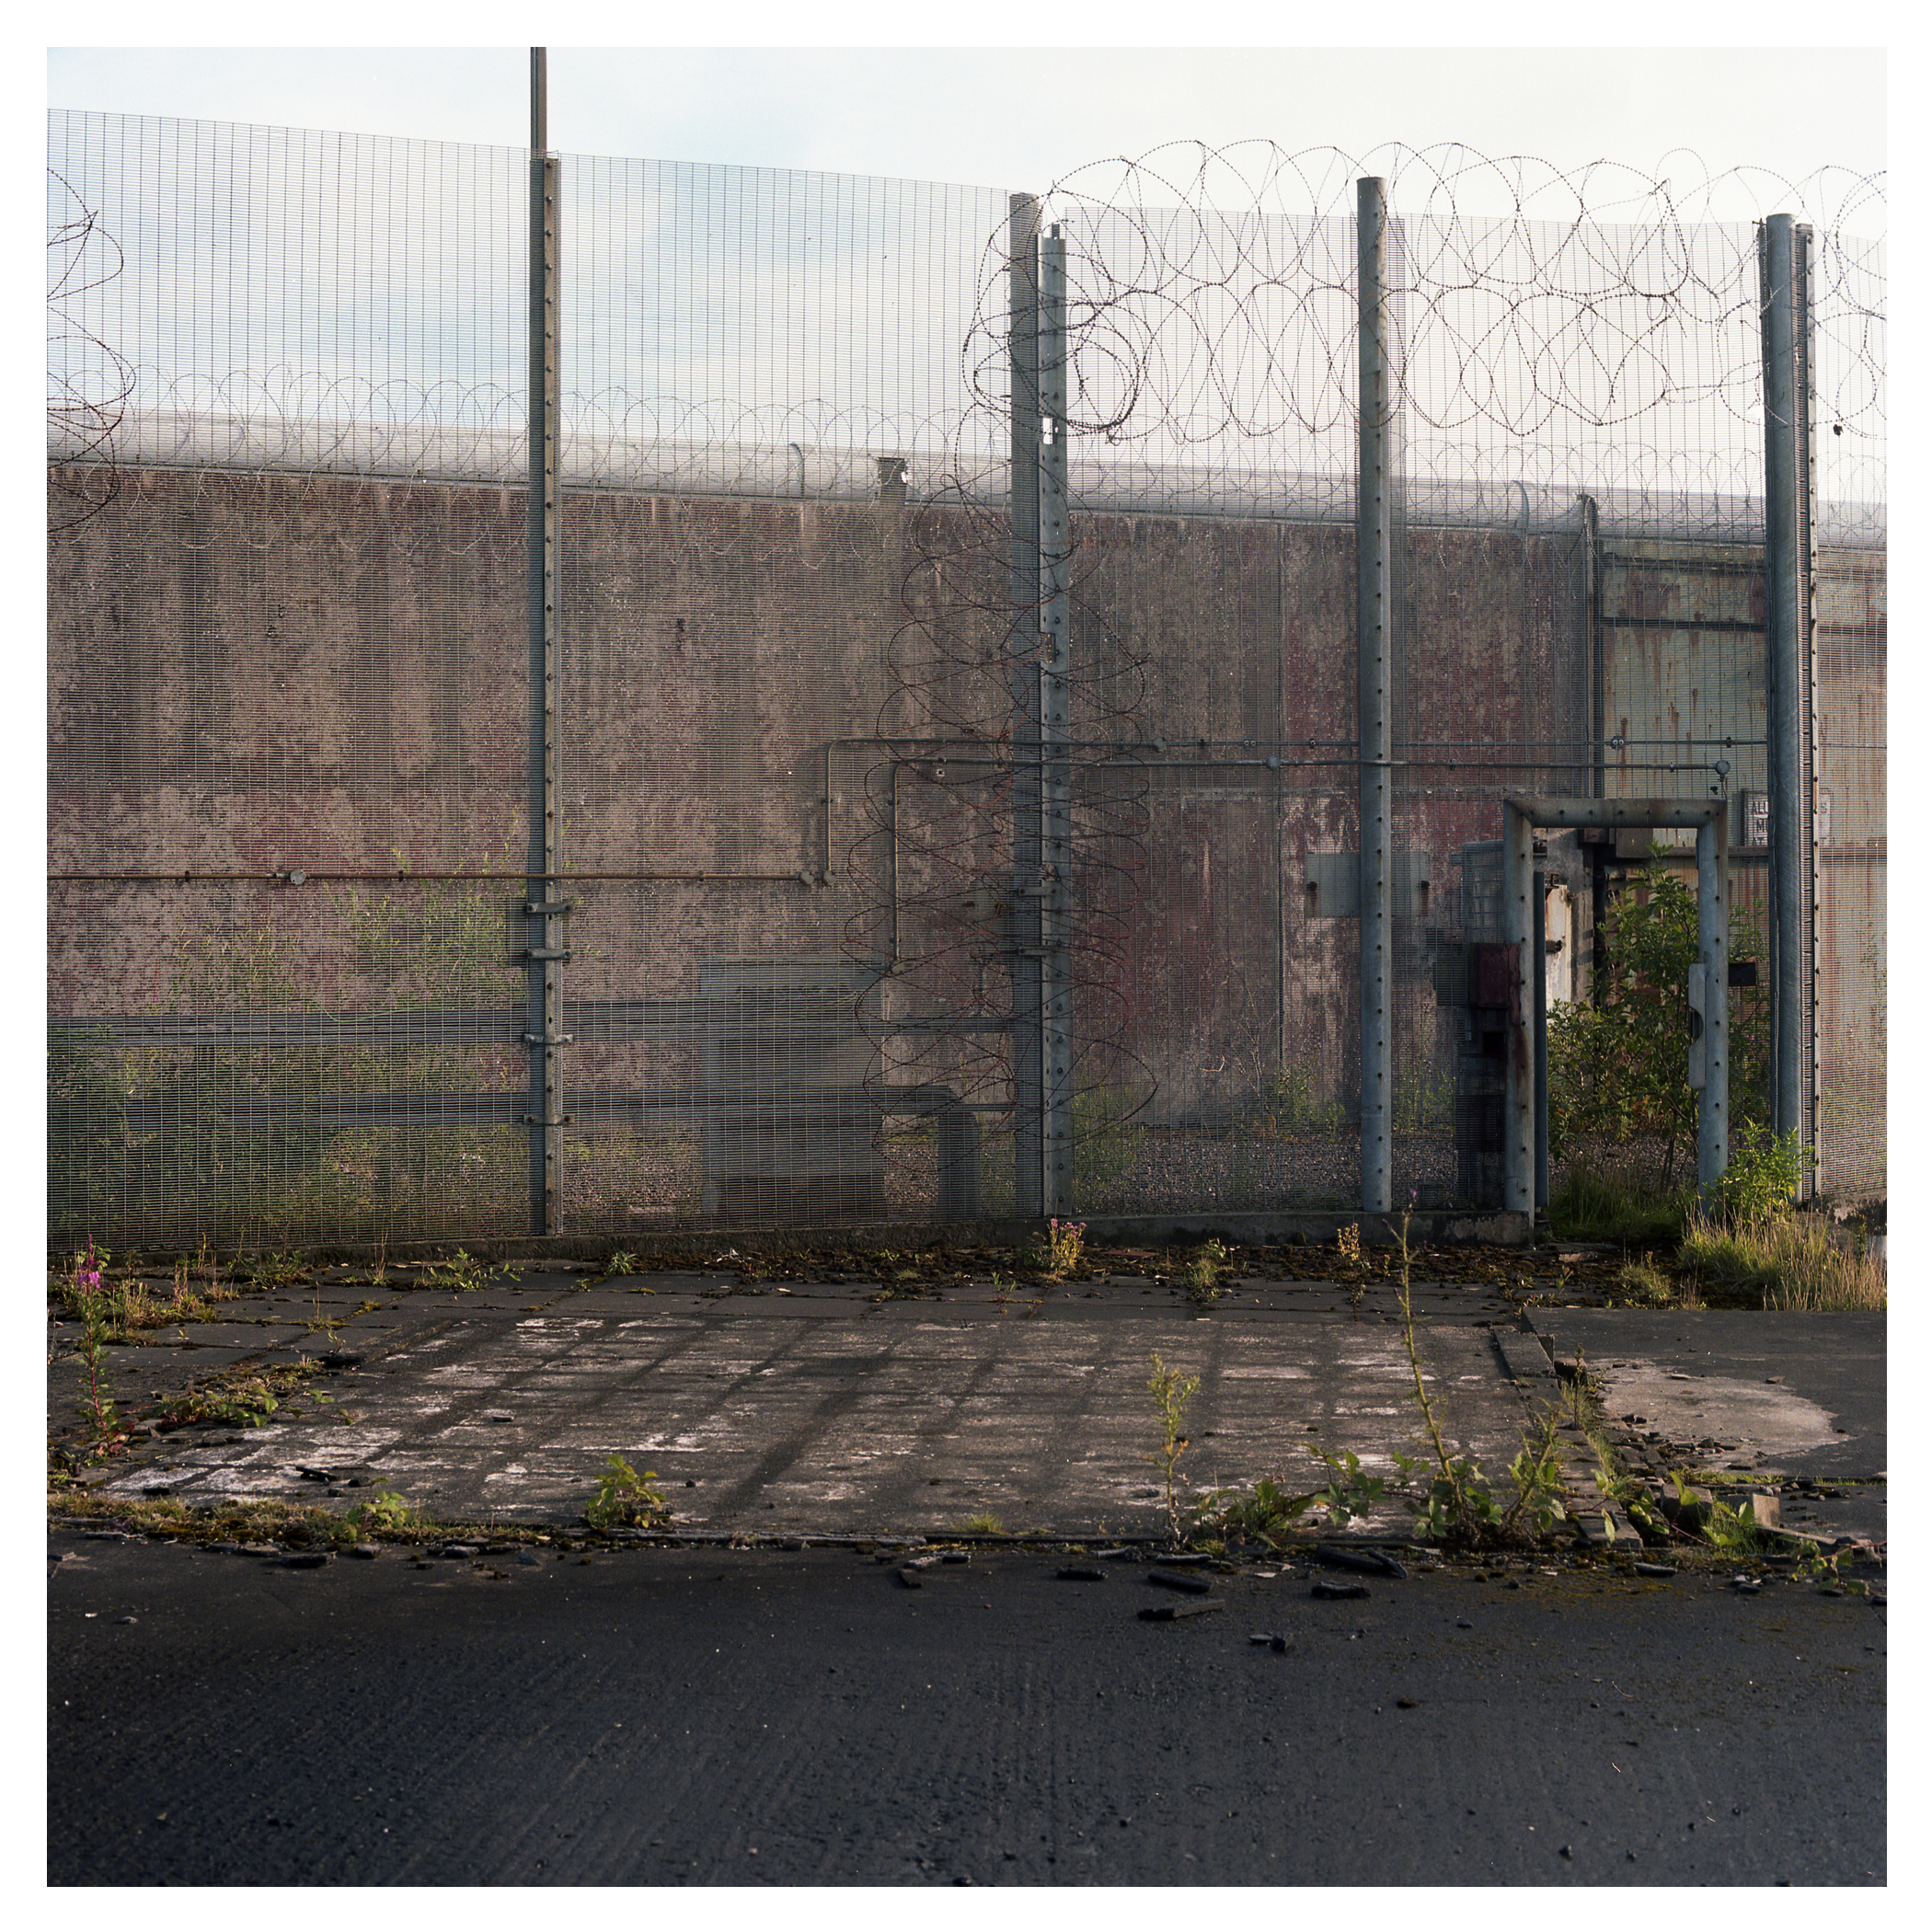 What remains of the former prison site falls into disrepair.